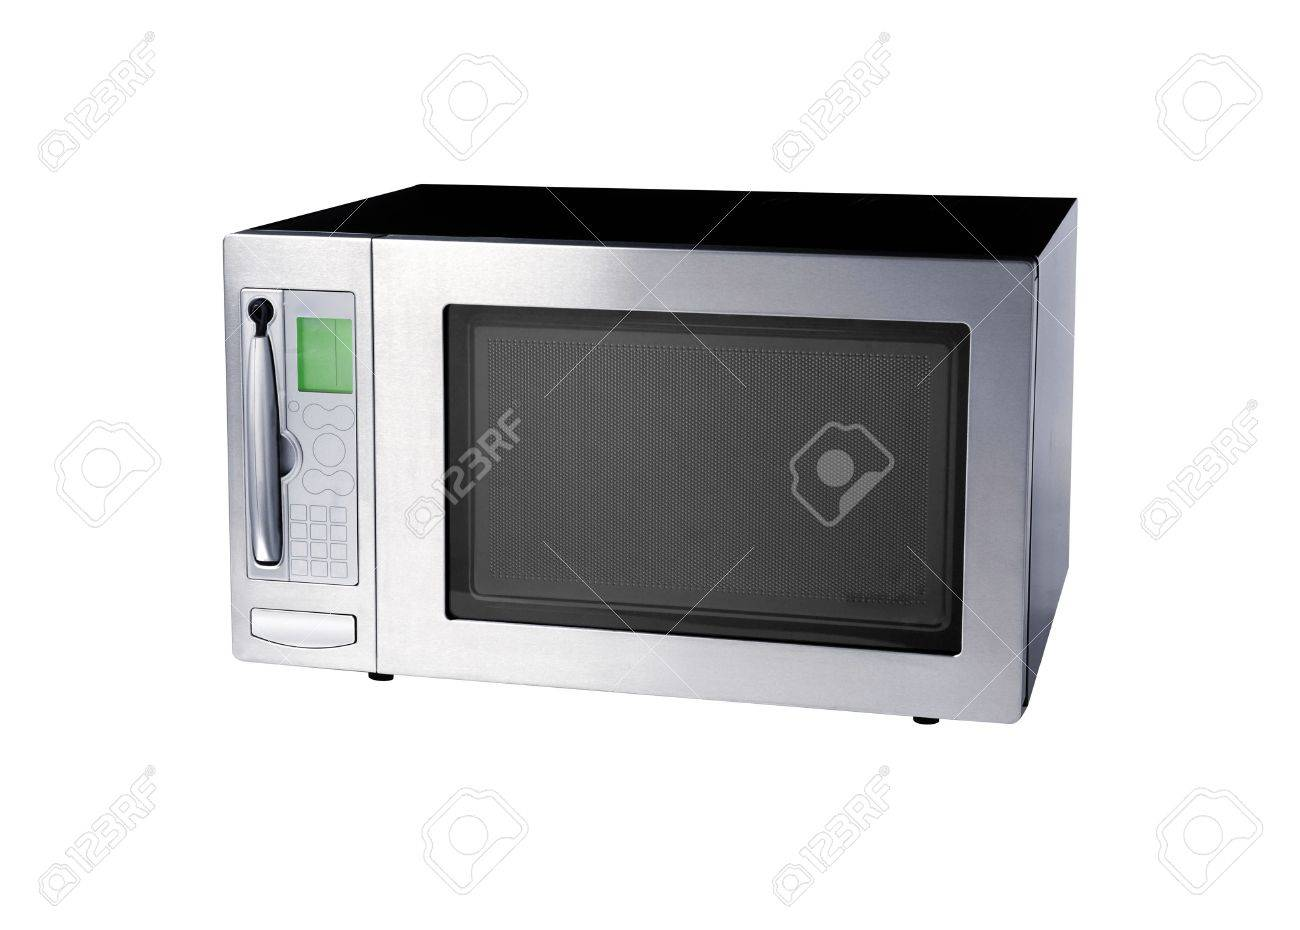 microwave oven isolated on white - 9523508